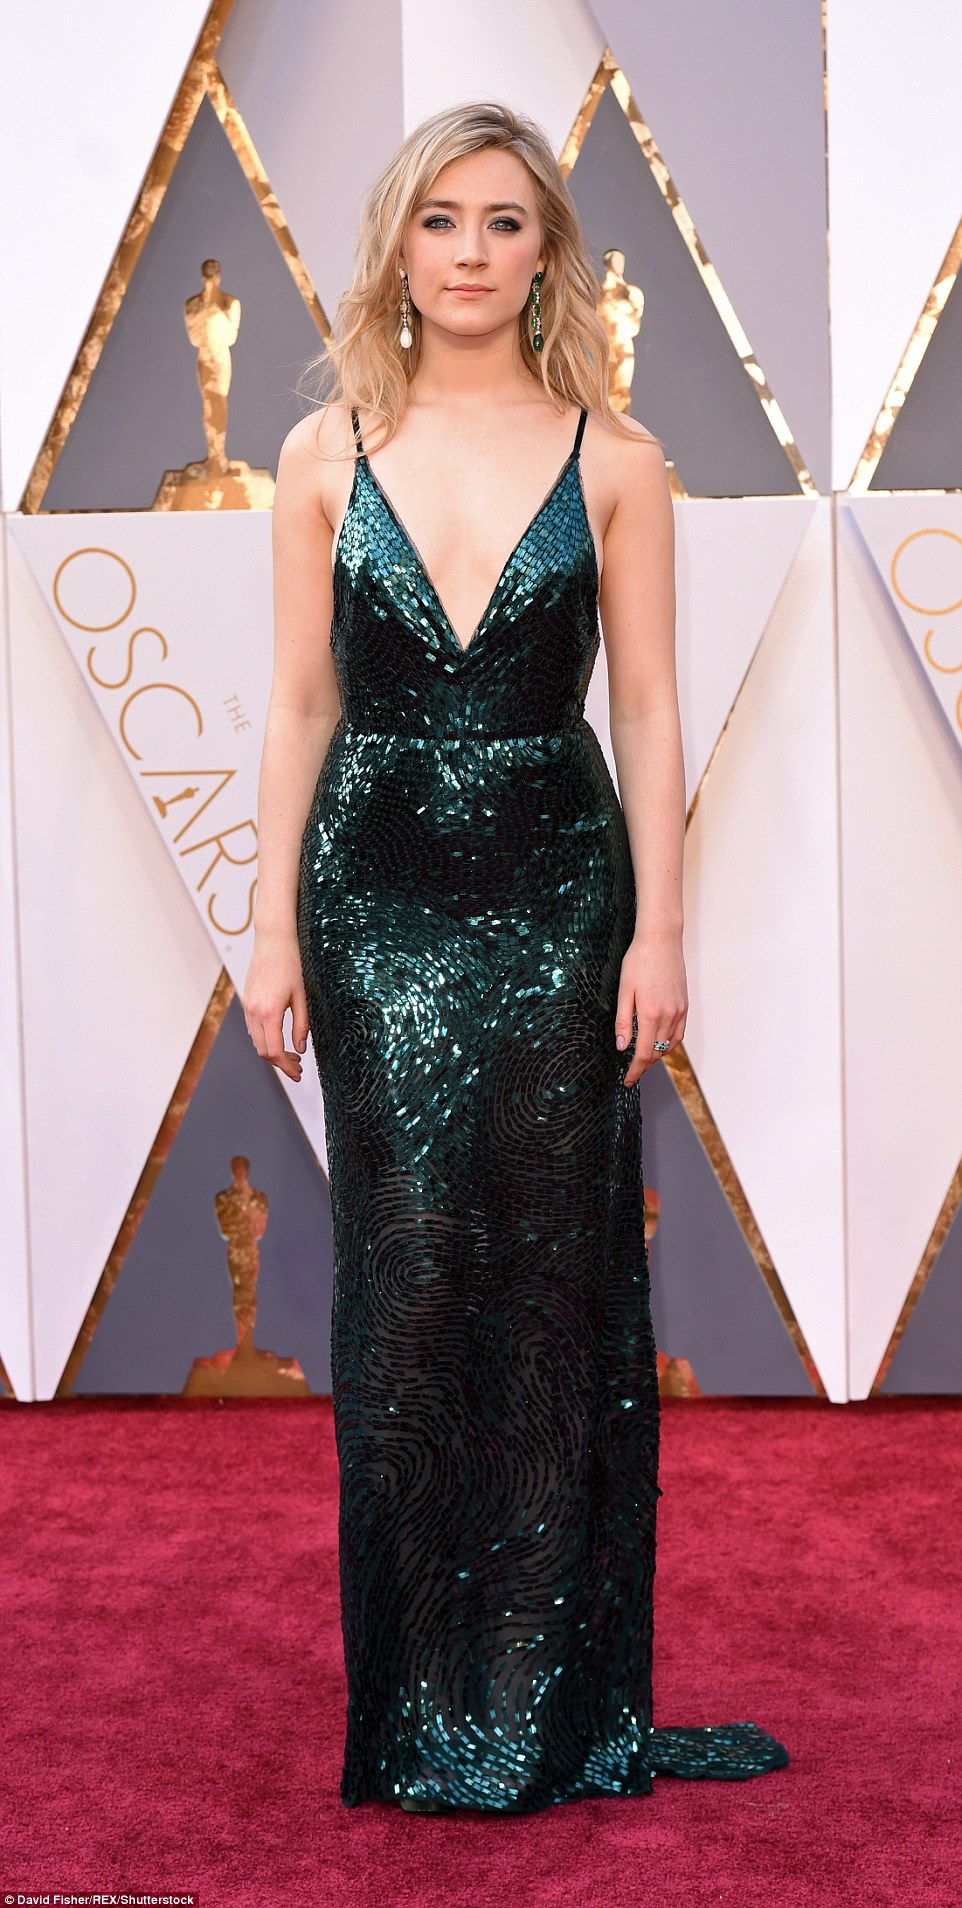 All that glitters: Another star from this side of the water was Irish actress Saoirse Ronan, who is up for Best Actress for her turn in Brooklyn